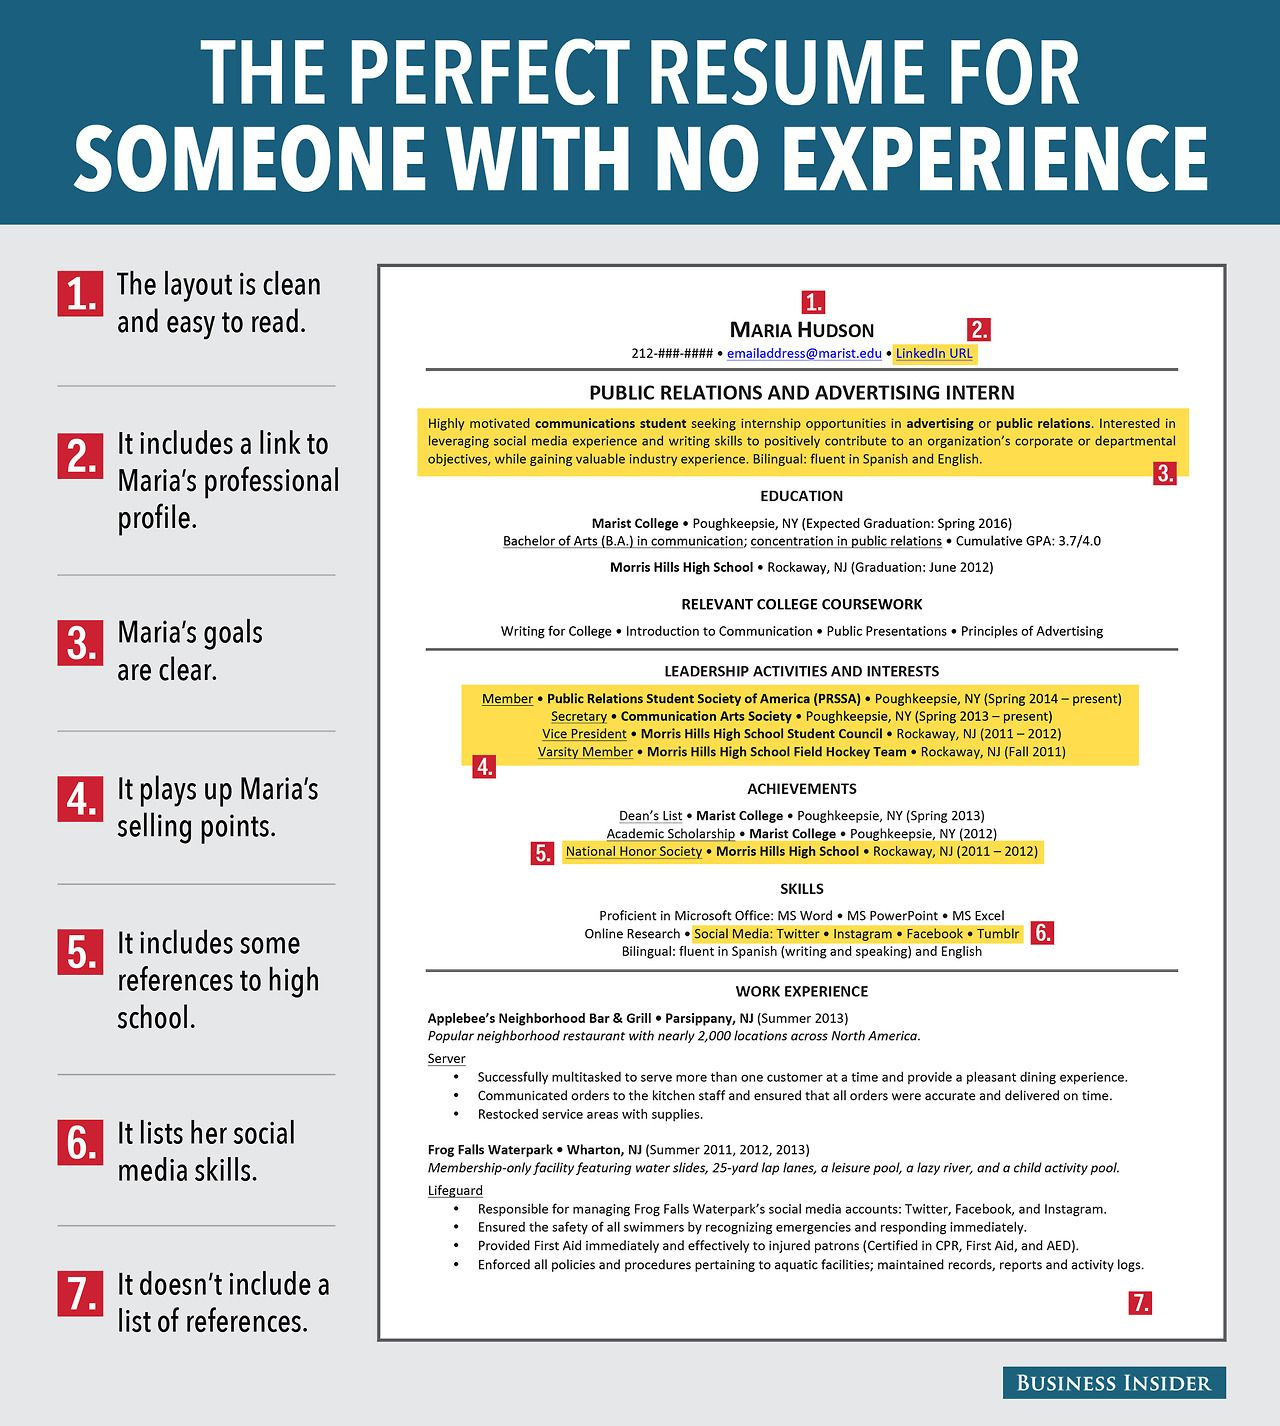 A Perfect Resume Example 7 Reasons This Is An Excellent Resume For Someone With No